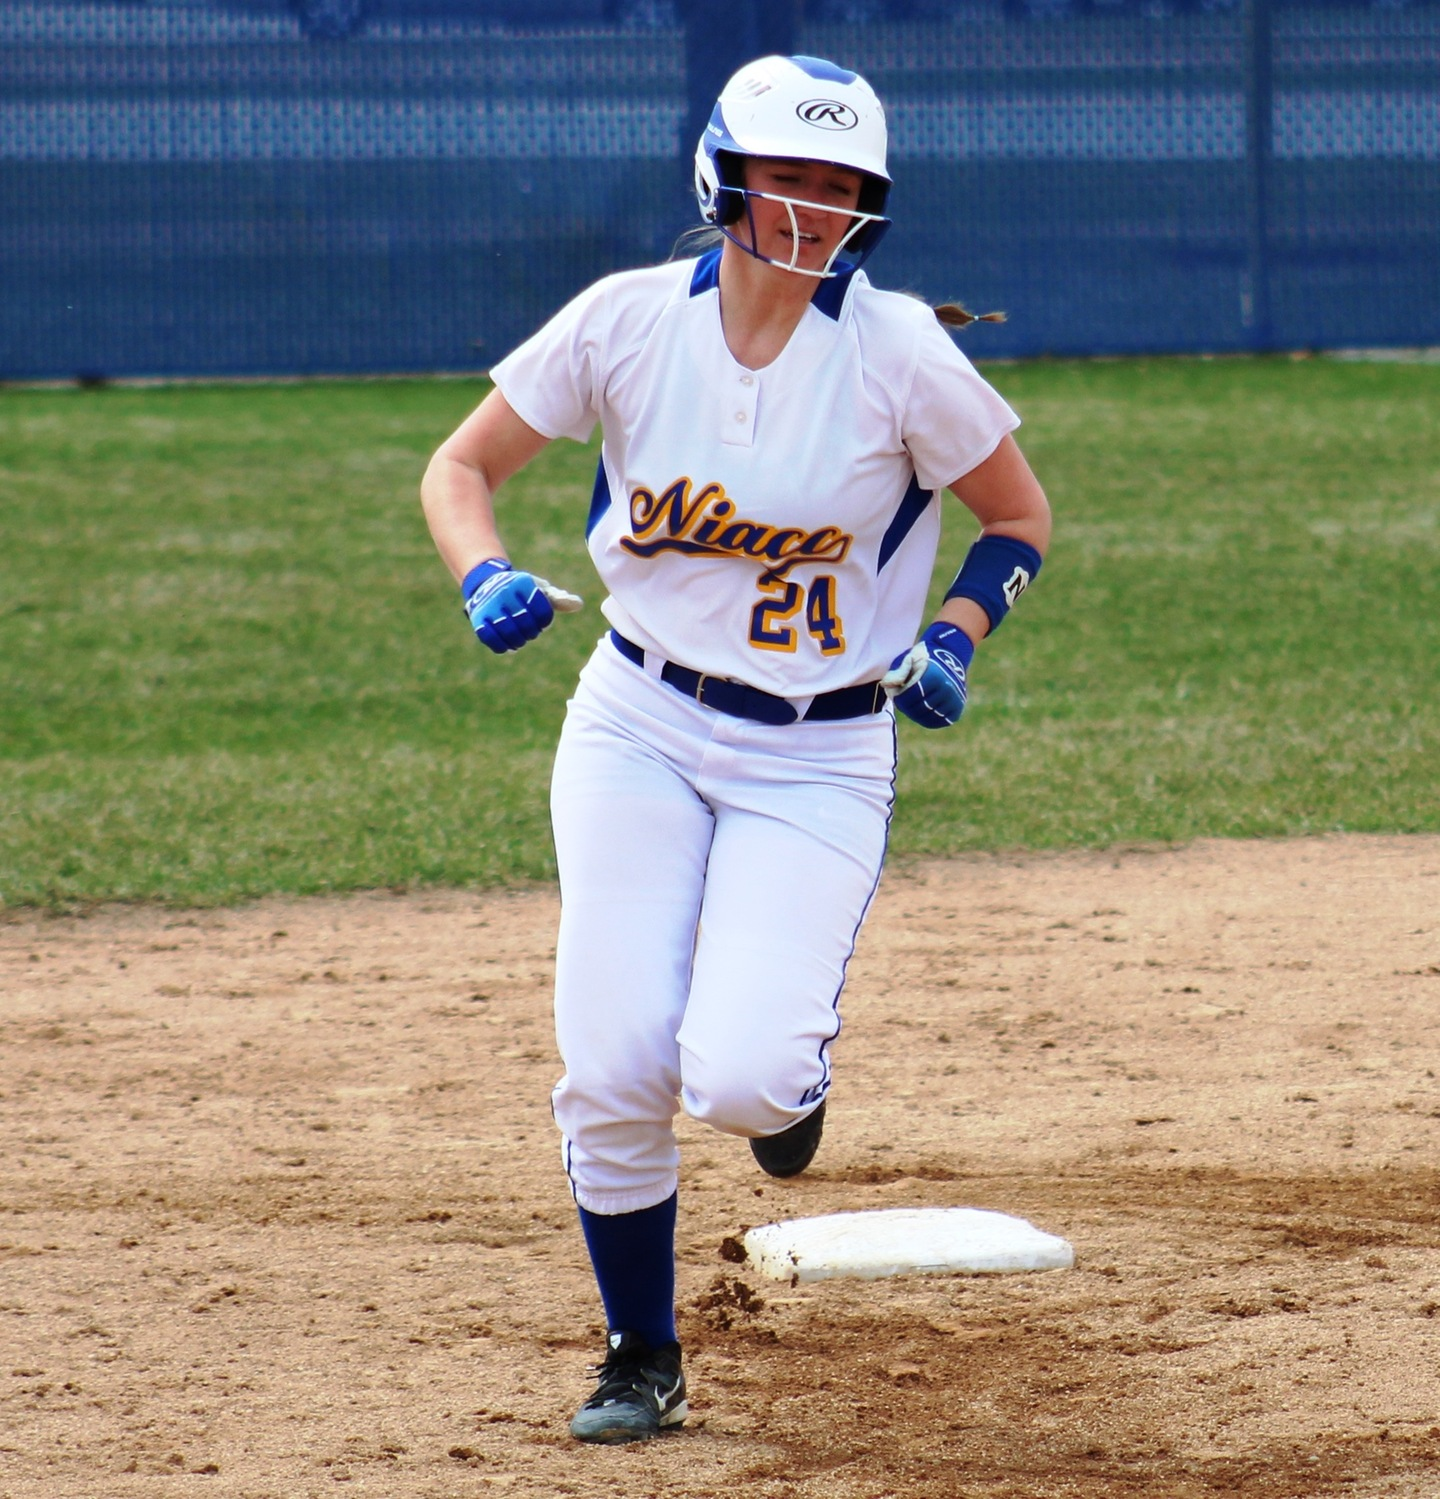 NIACC's Hailee Ausenhus rounds second base after hitting a home run in first game Tuesday against Indian Hills.